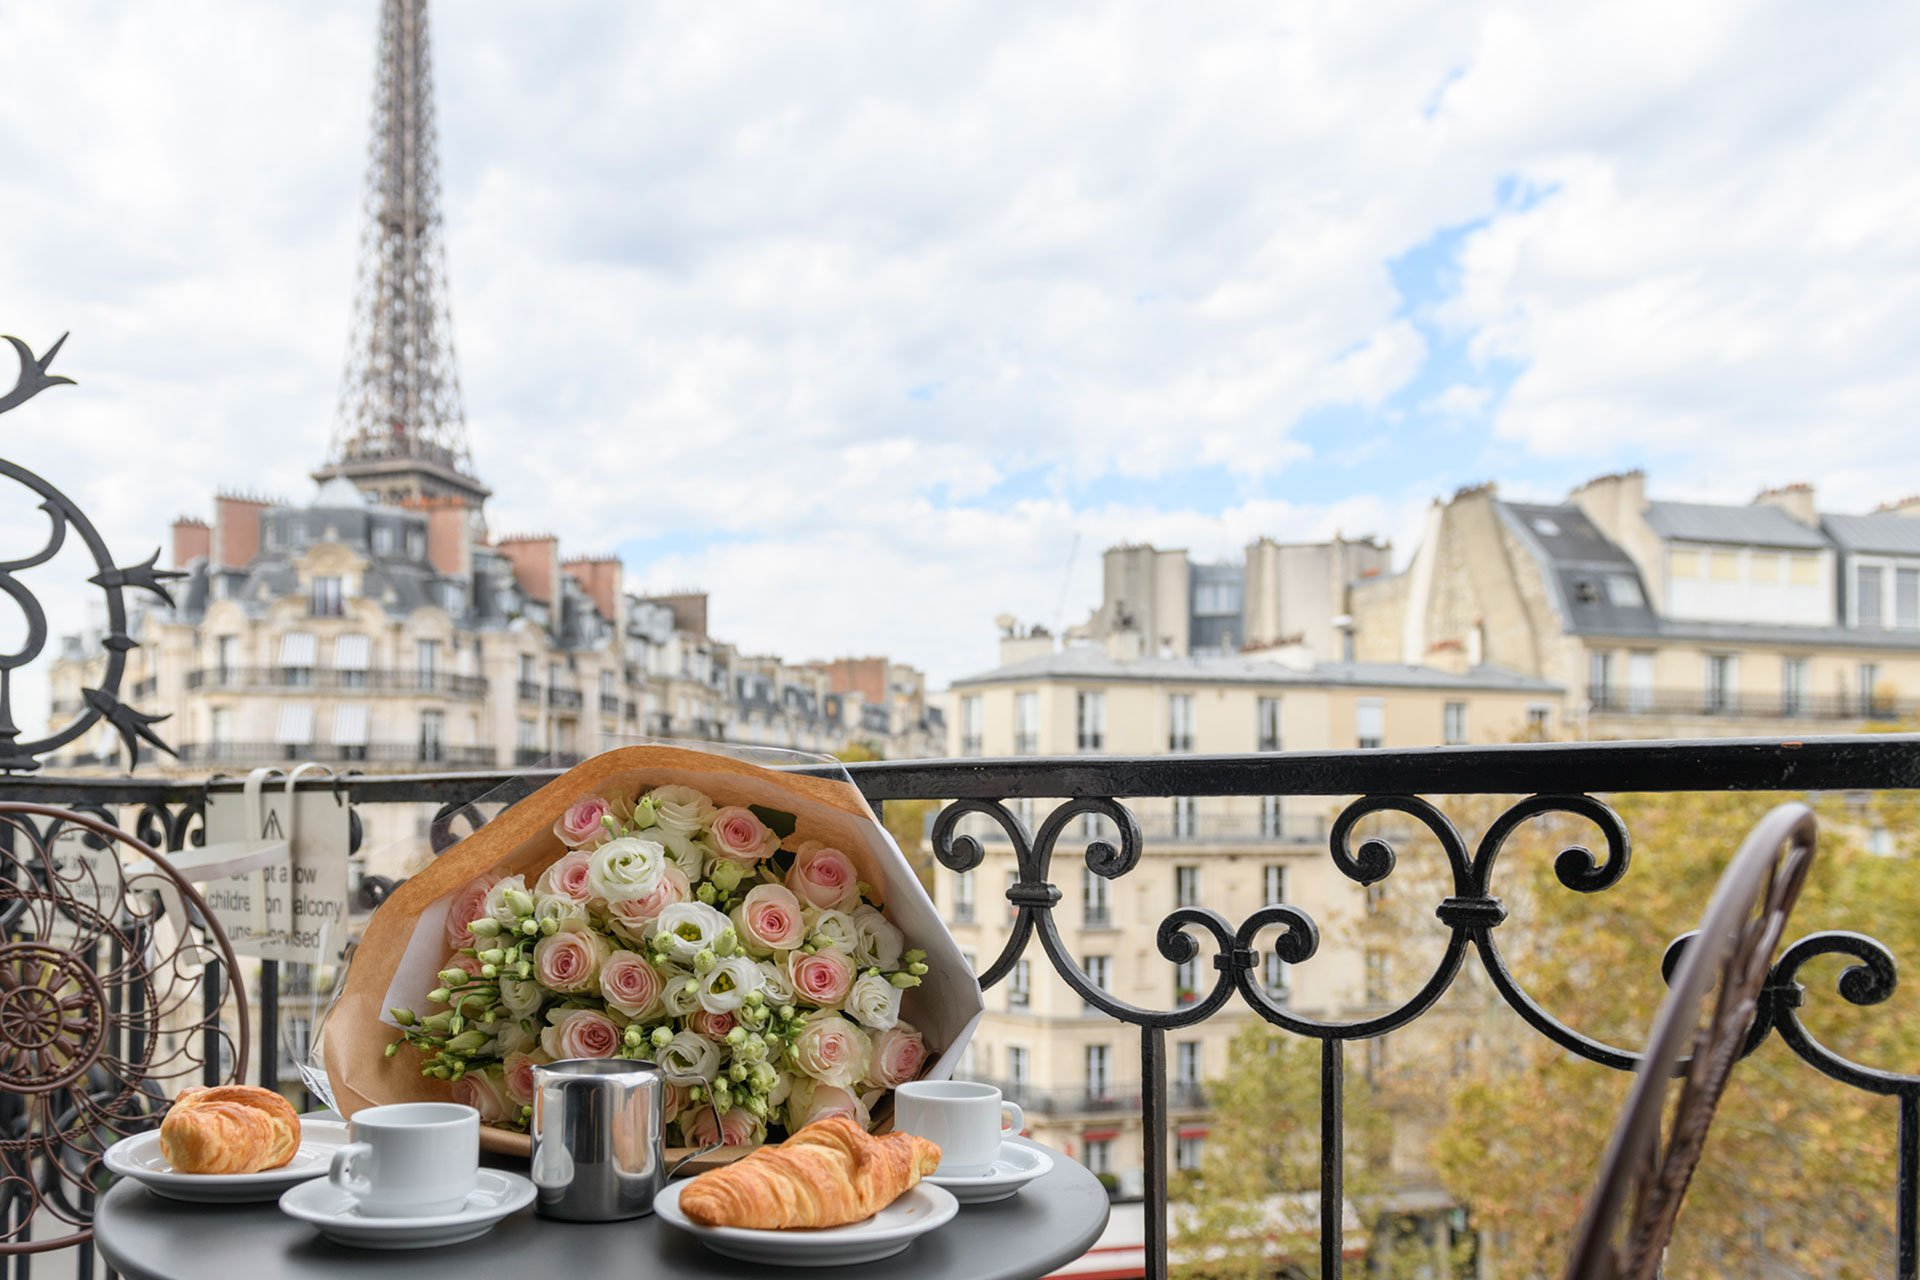 Dine al fresco on your balcony in the Bordeaux vacation rental offered by Paris Perfect